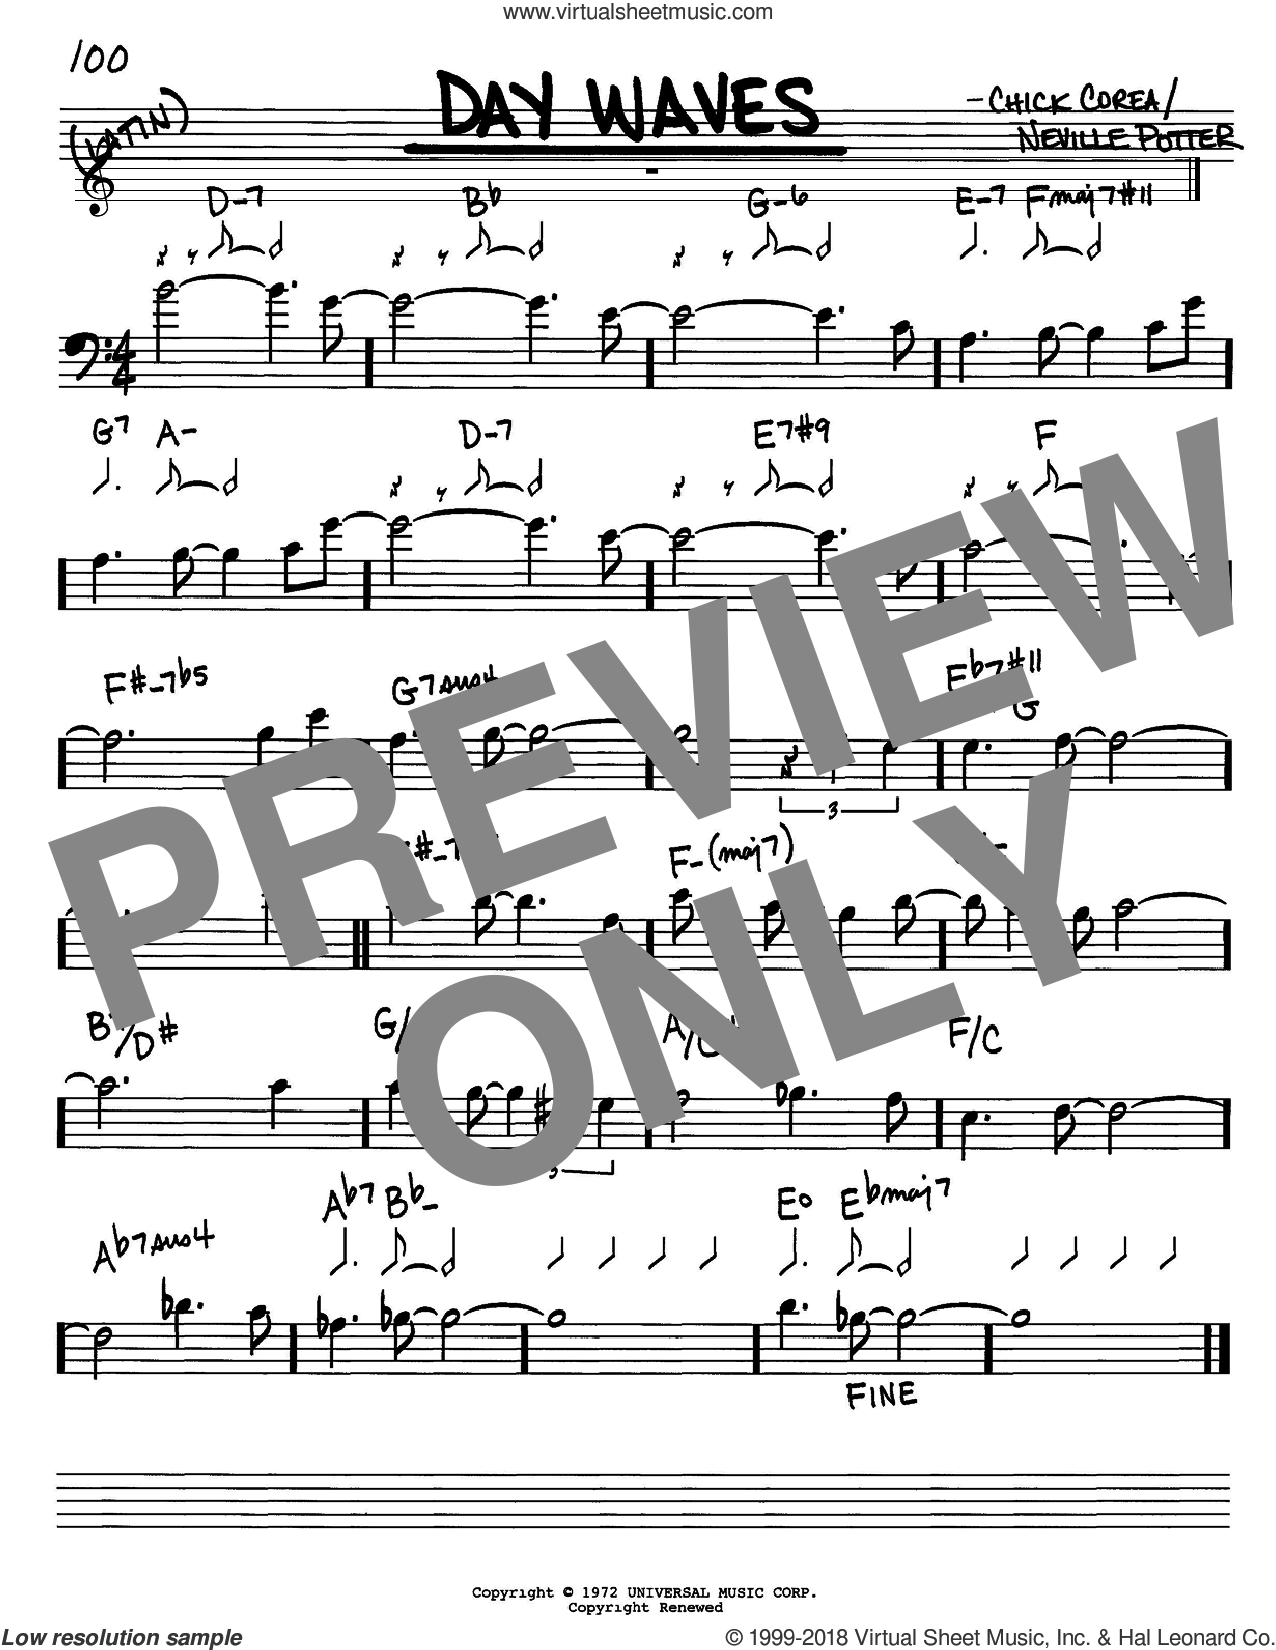 Day Waves sheet music for voice and other instruments (Bass Clef ) by Chick Corea. Score Image Preview.